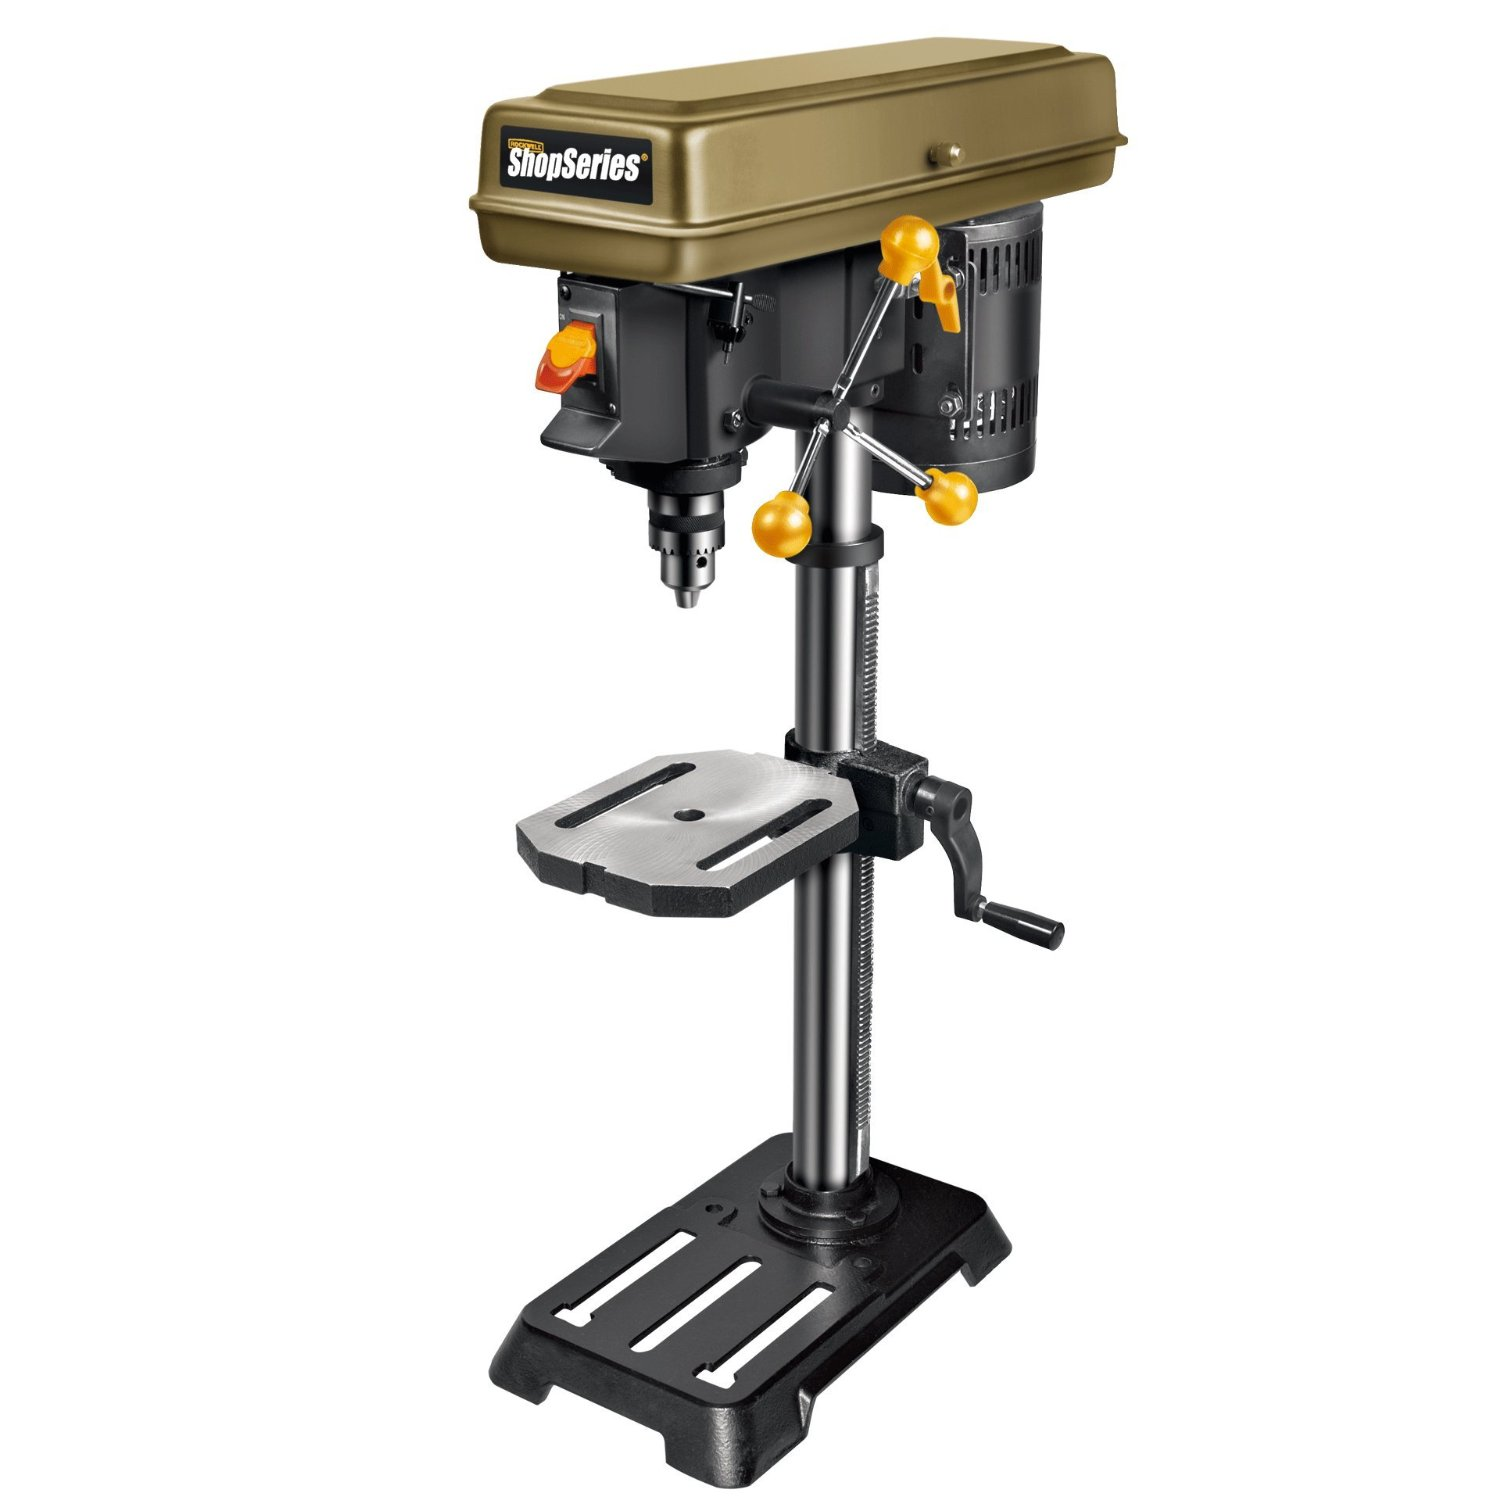 Rockwell RK7033 Shop Series Drill Press Replaces